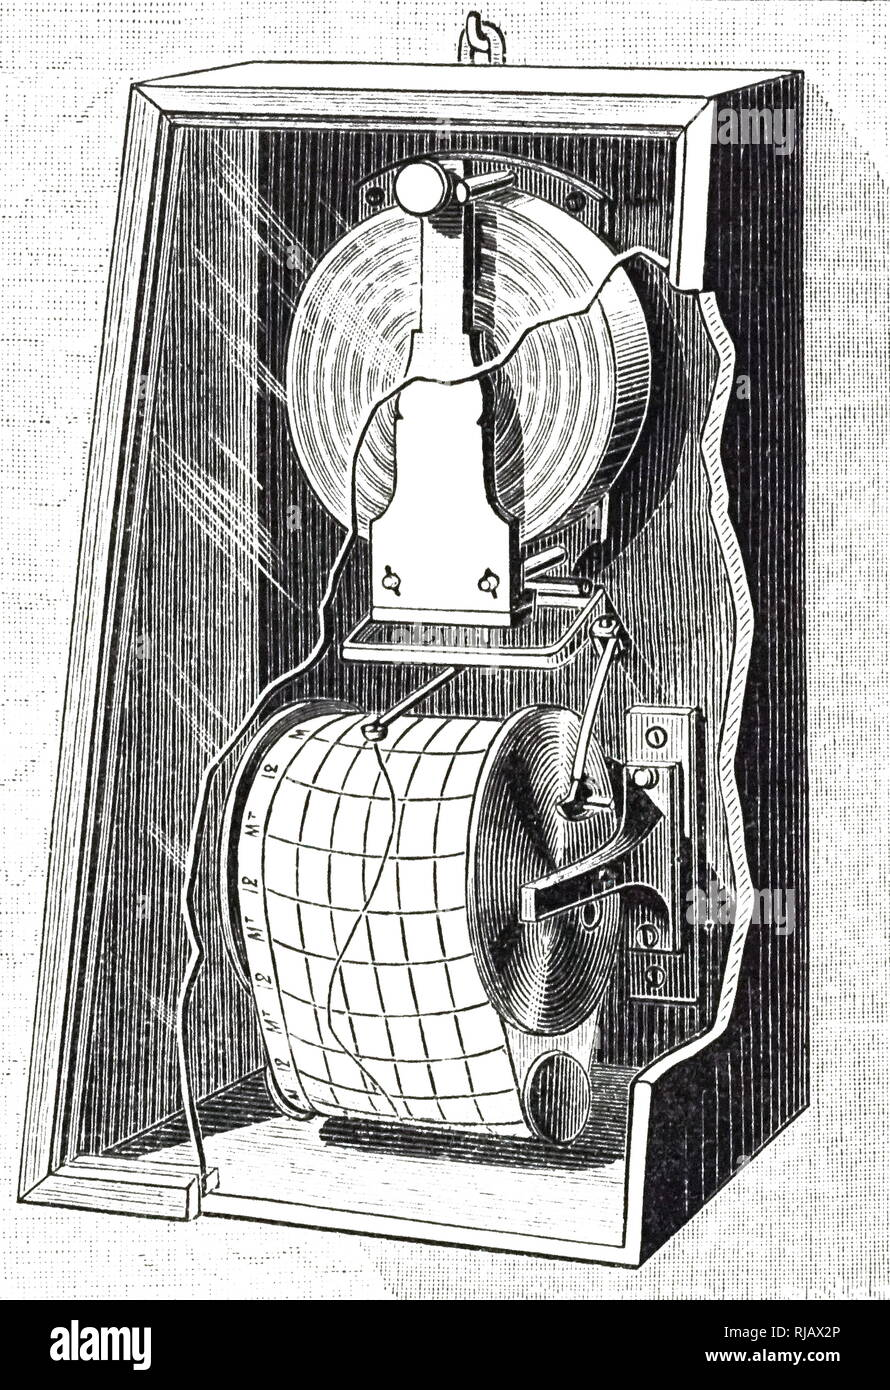 An engraving depicting Redier's registering barometer. A barometer is a scientific instrument used in meteorology to measure atmospheric pressure. Invented by Antoine Redier (1817-1892) a French inventor, engineer and watchmaker. Dated 19th century - Stock Image